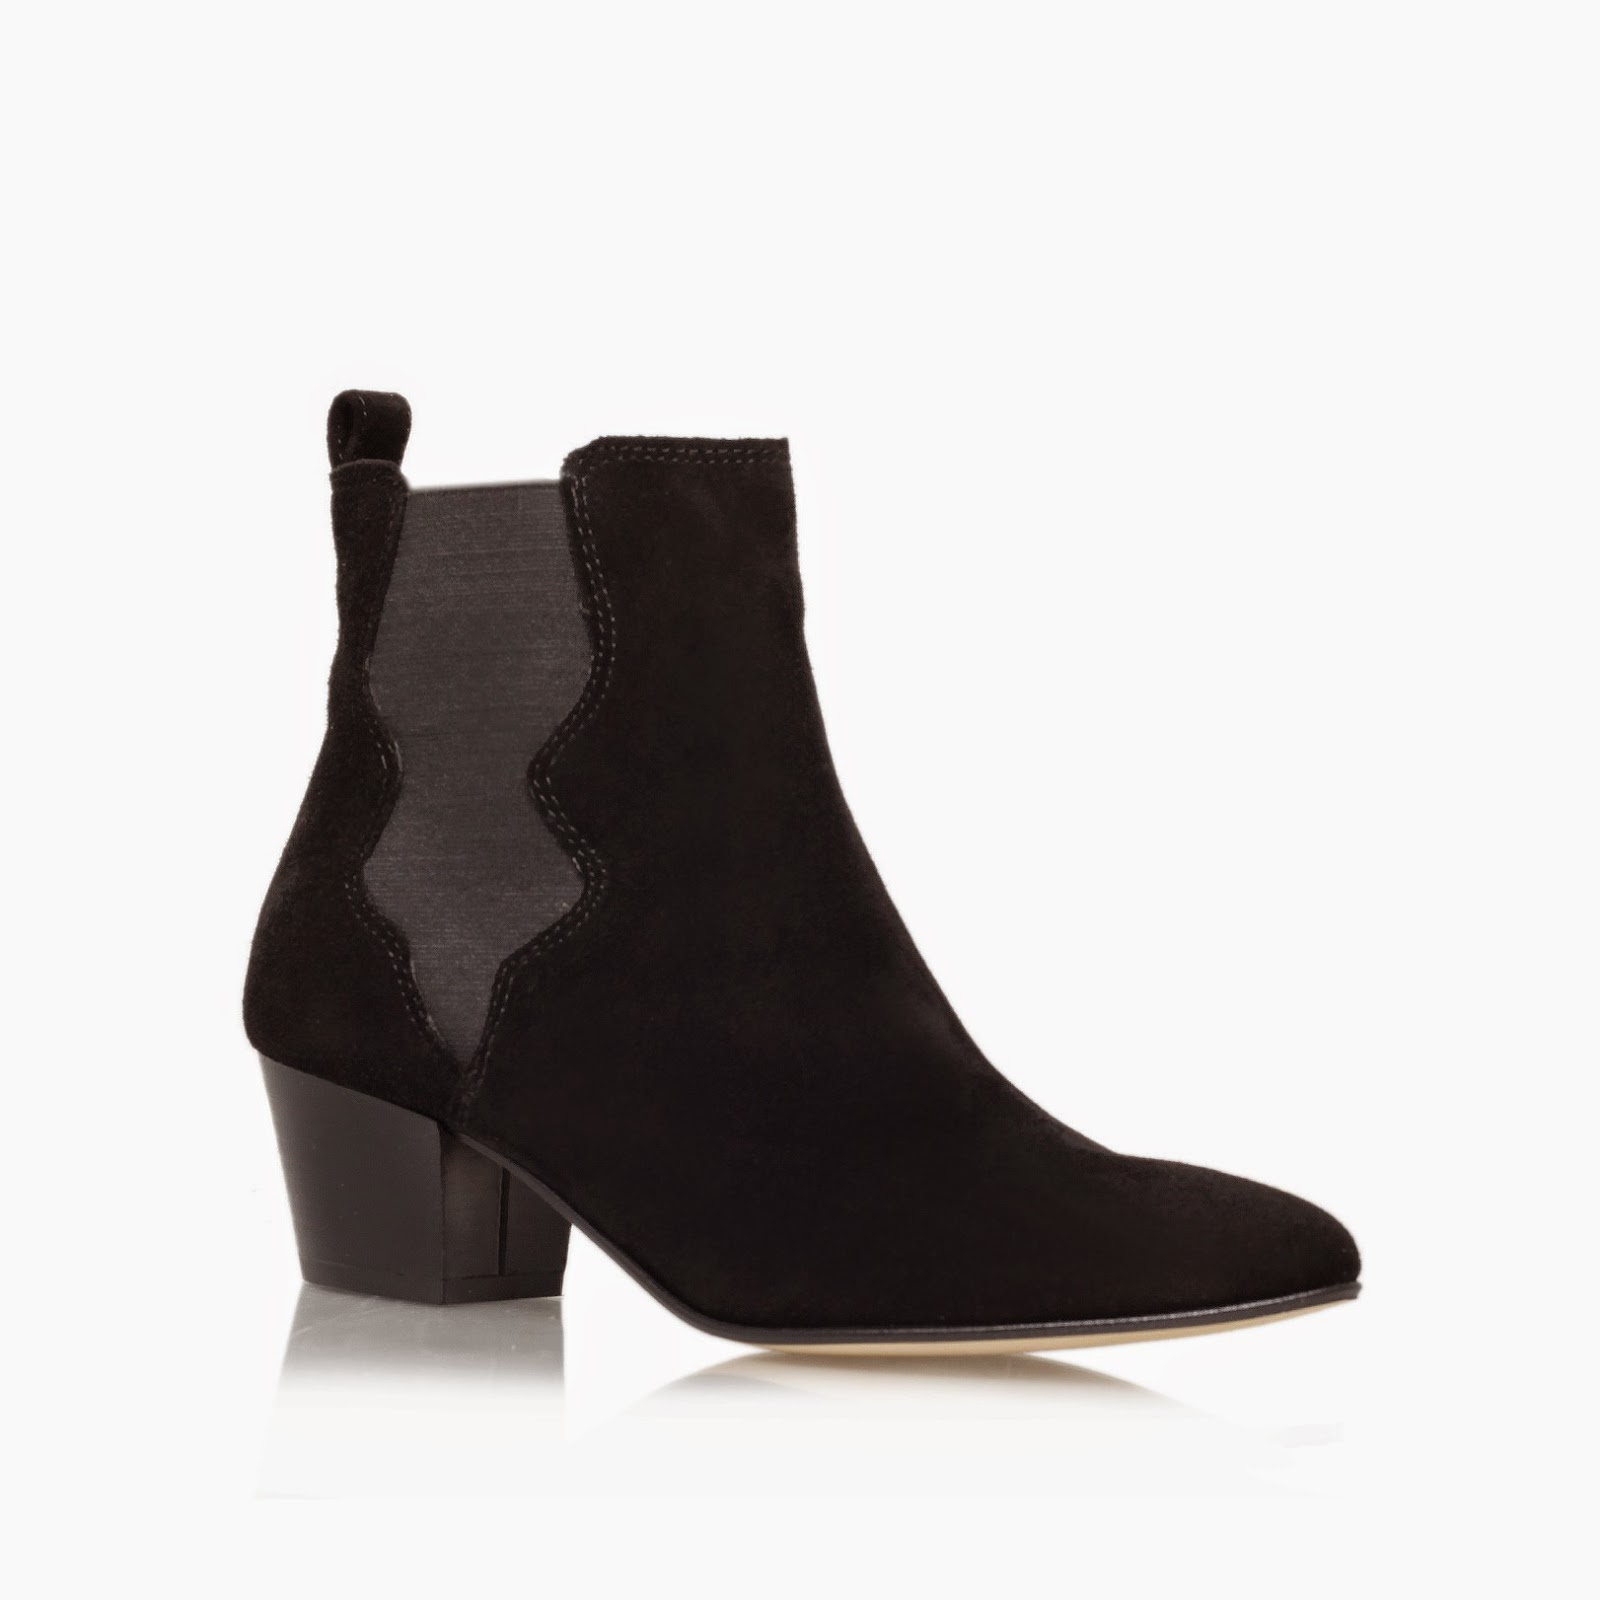 carvela black suede boots, kurt geiger black suede ankle boot, Scottie ankle boot review,